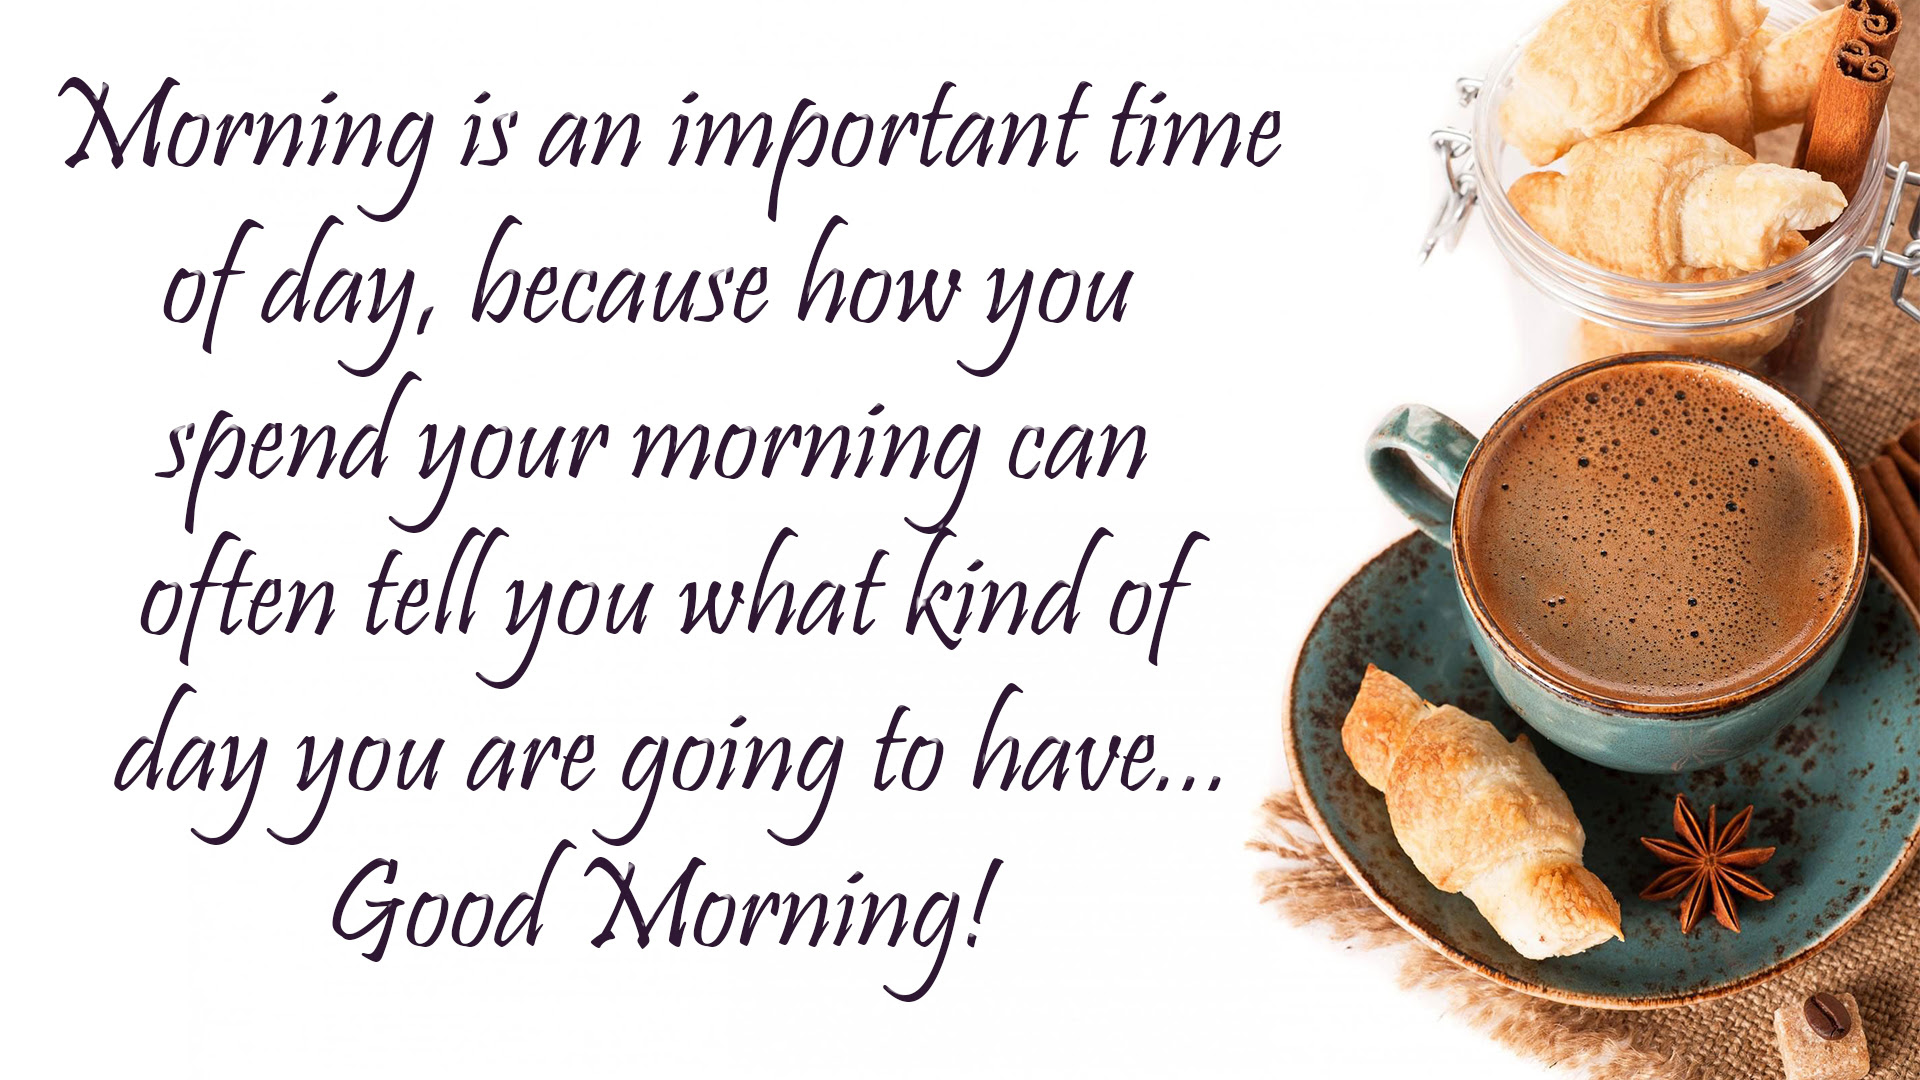 Good Day Quotes Wishes Images Morning Quotes Wishes